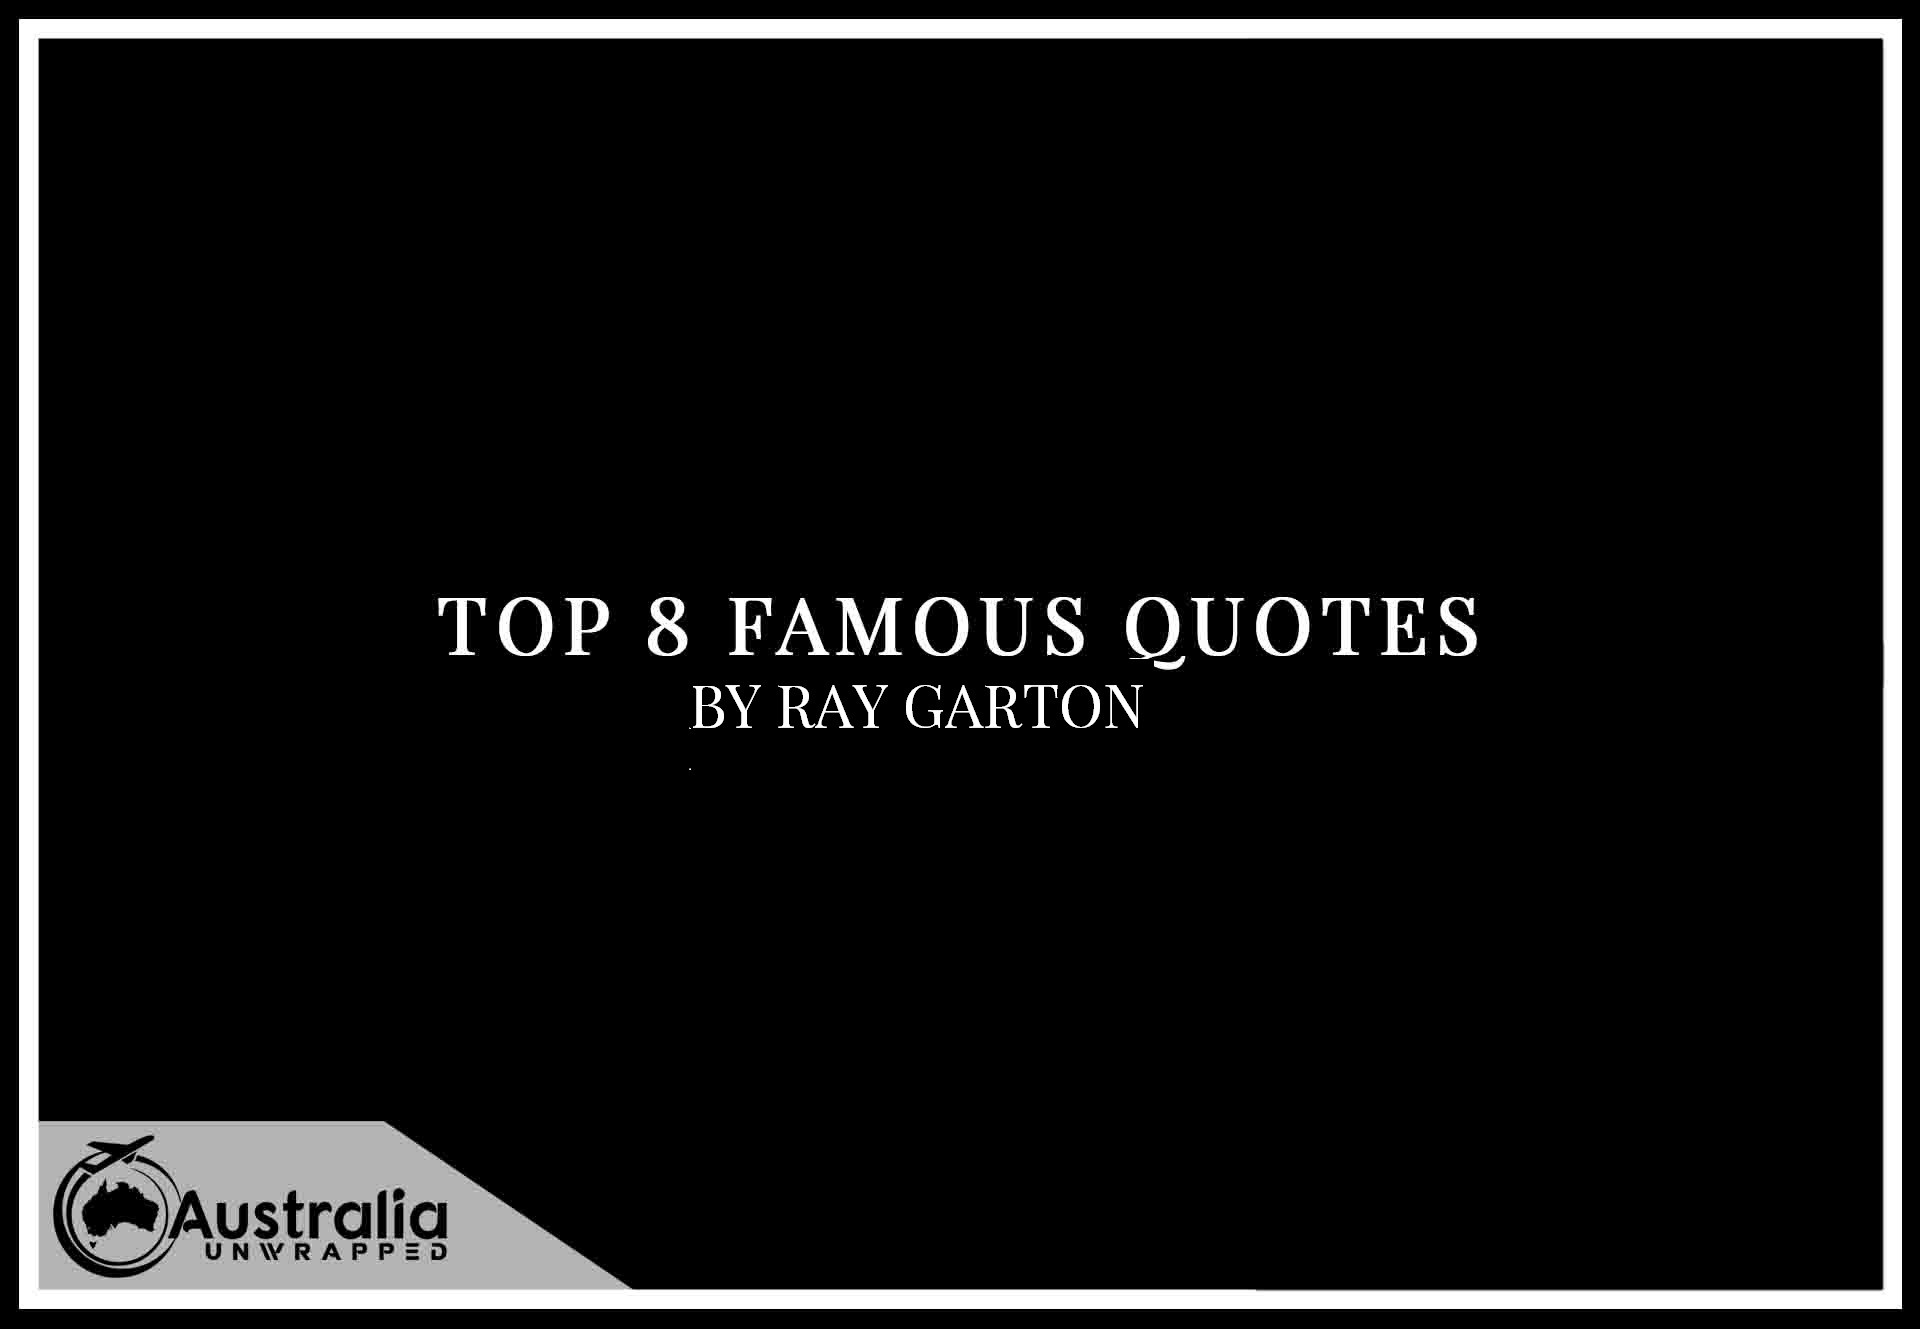 Top 8 Famous Quotes by Author Ray Garton